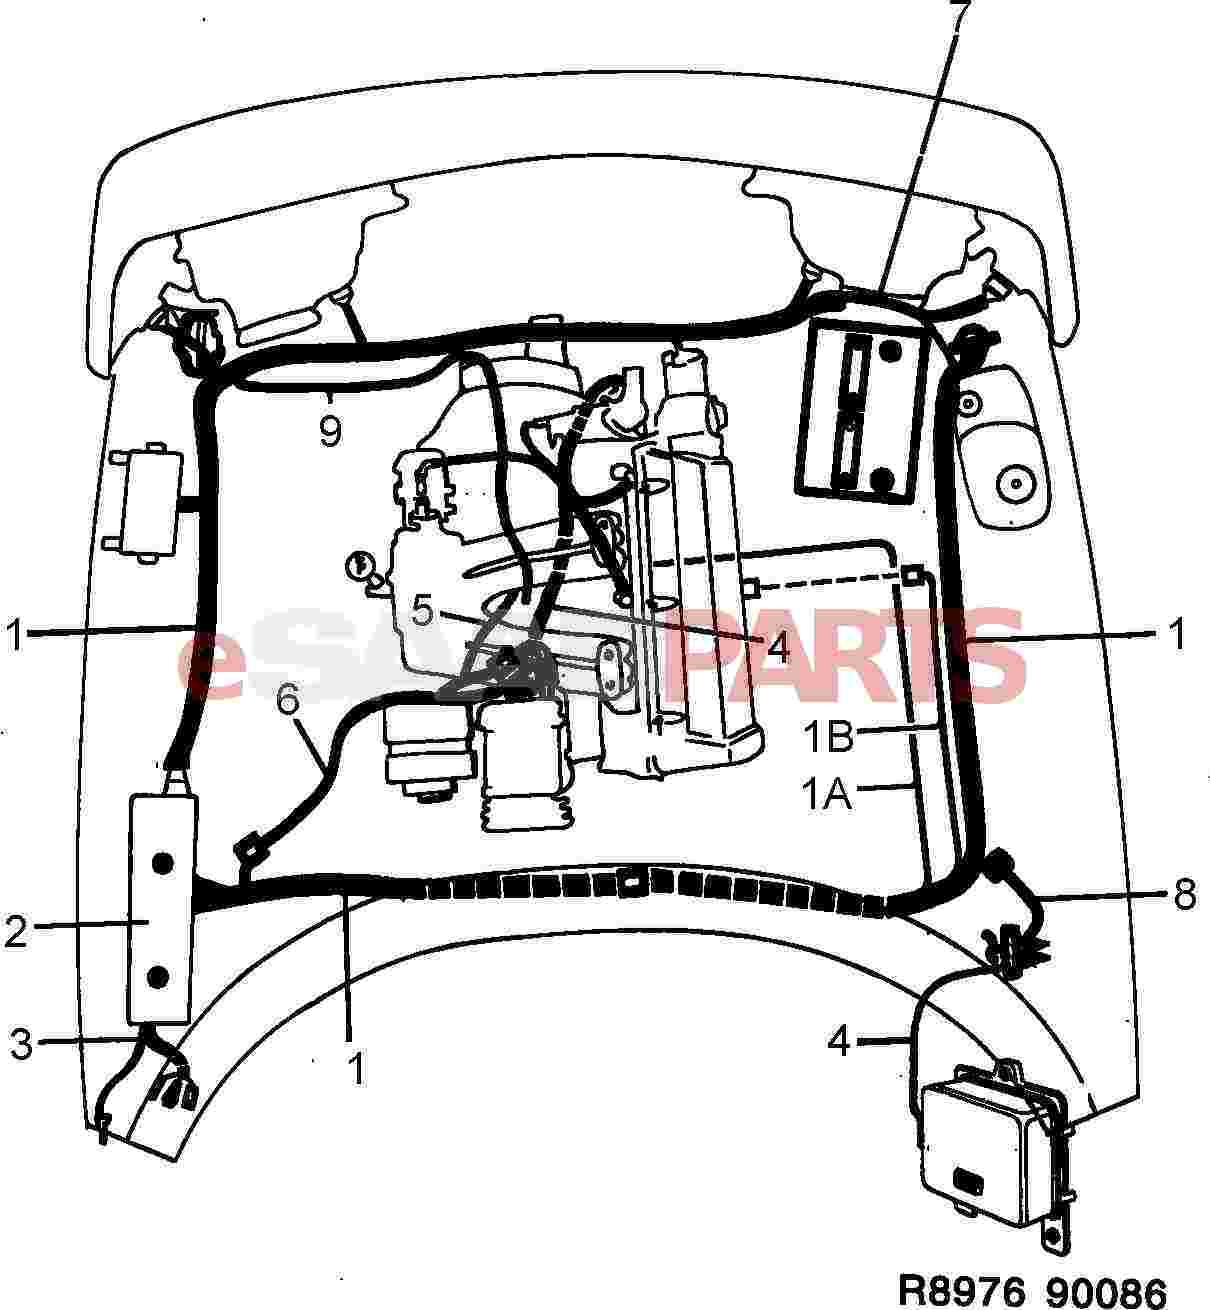 Saab Trionic Wiring Diagram